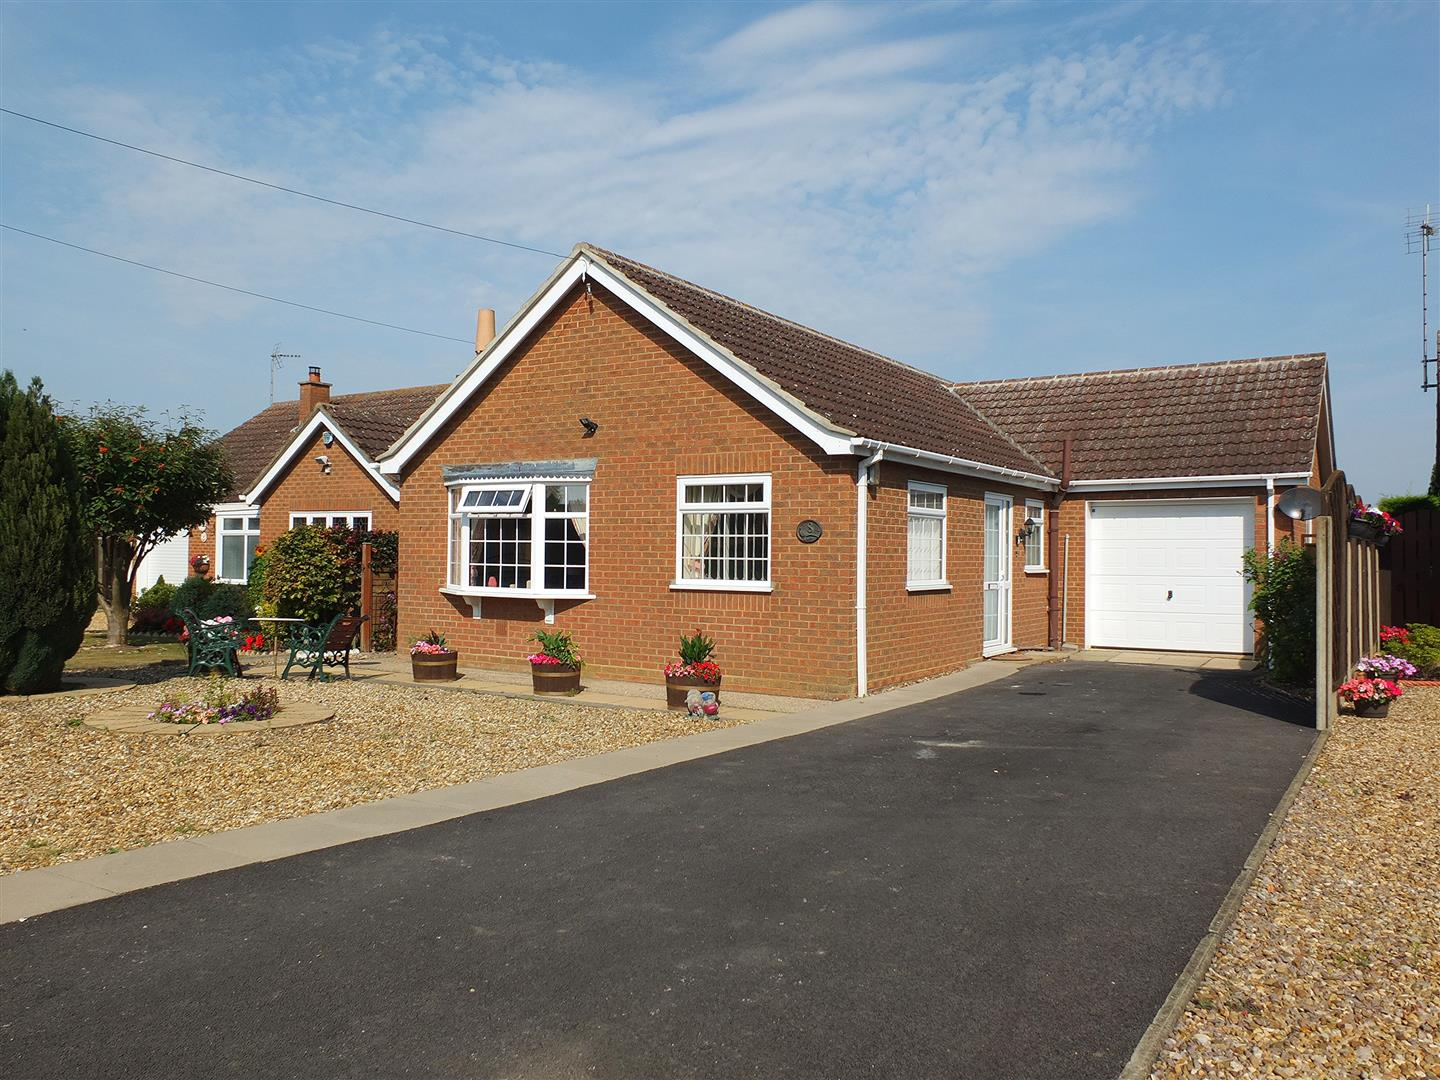 2 bed detached bungalow for sale in Lutton Spalding, PE12 9NU 0